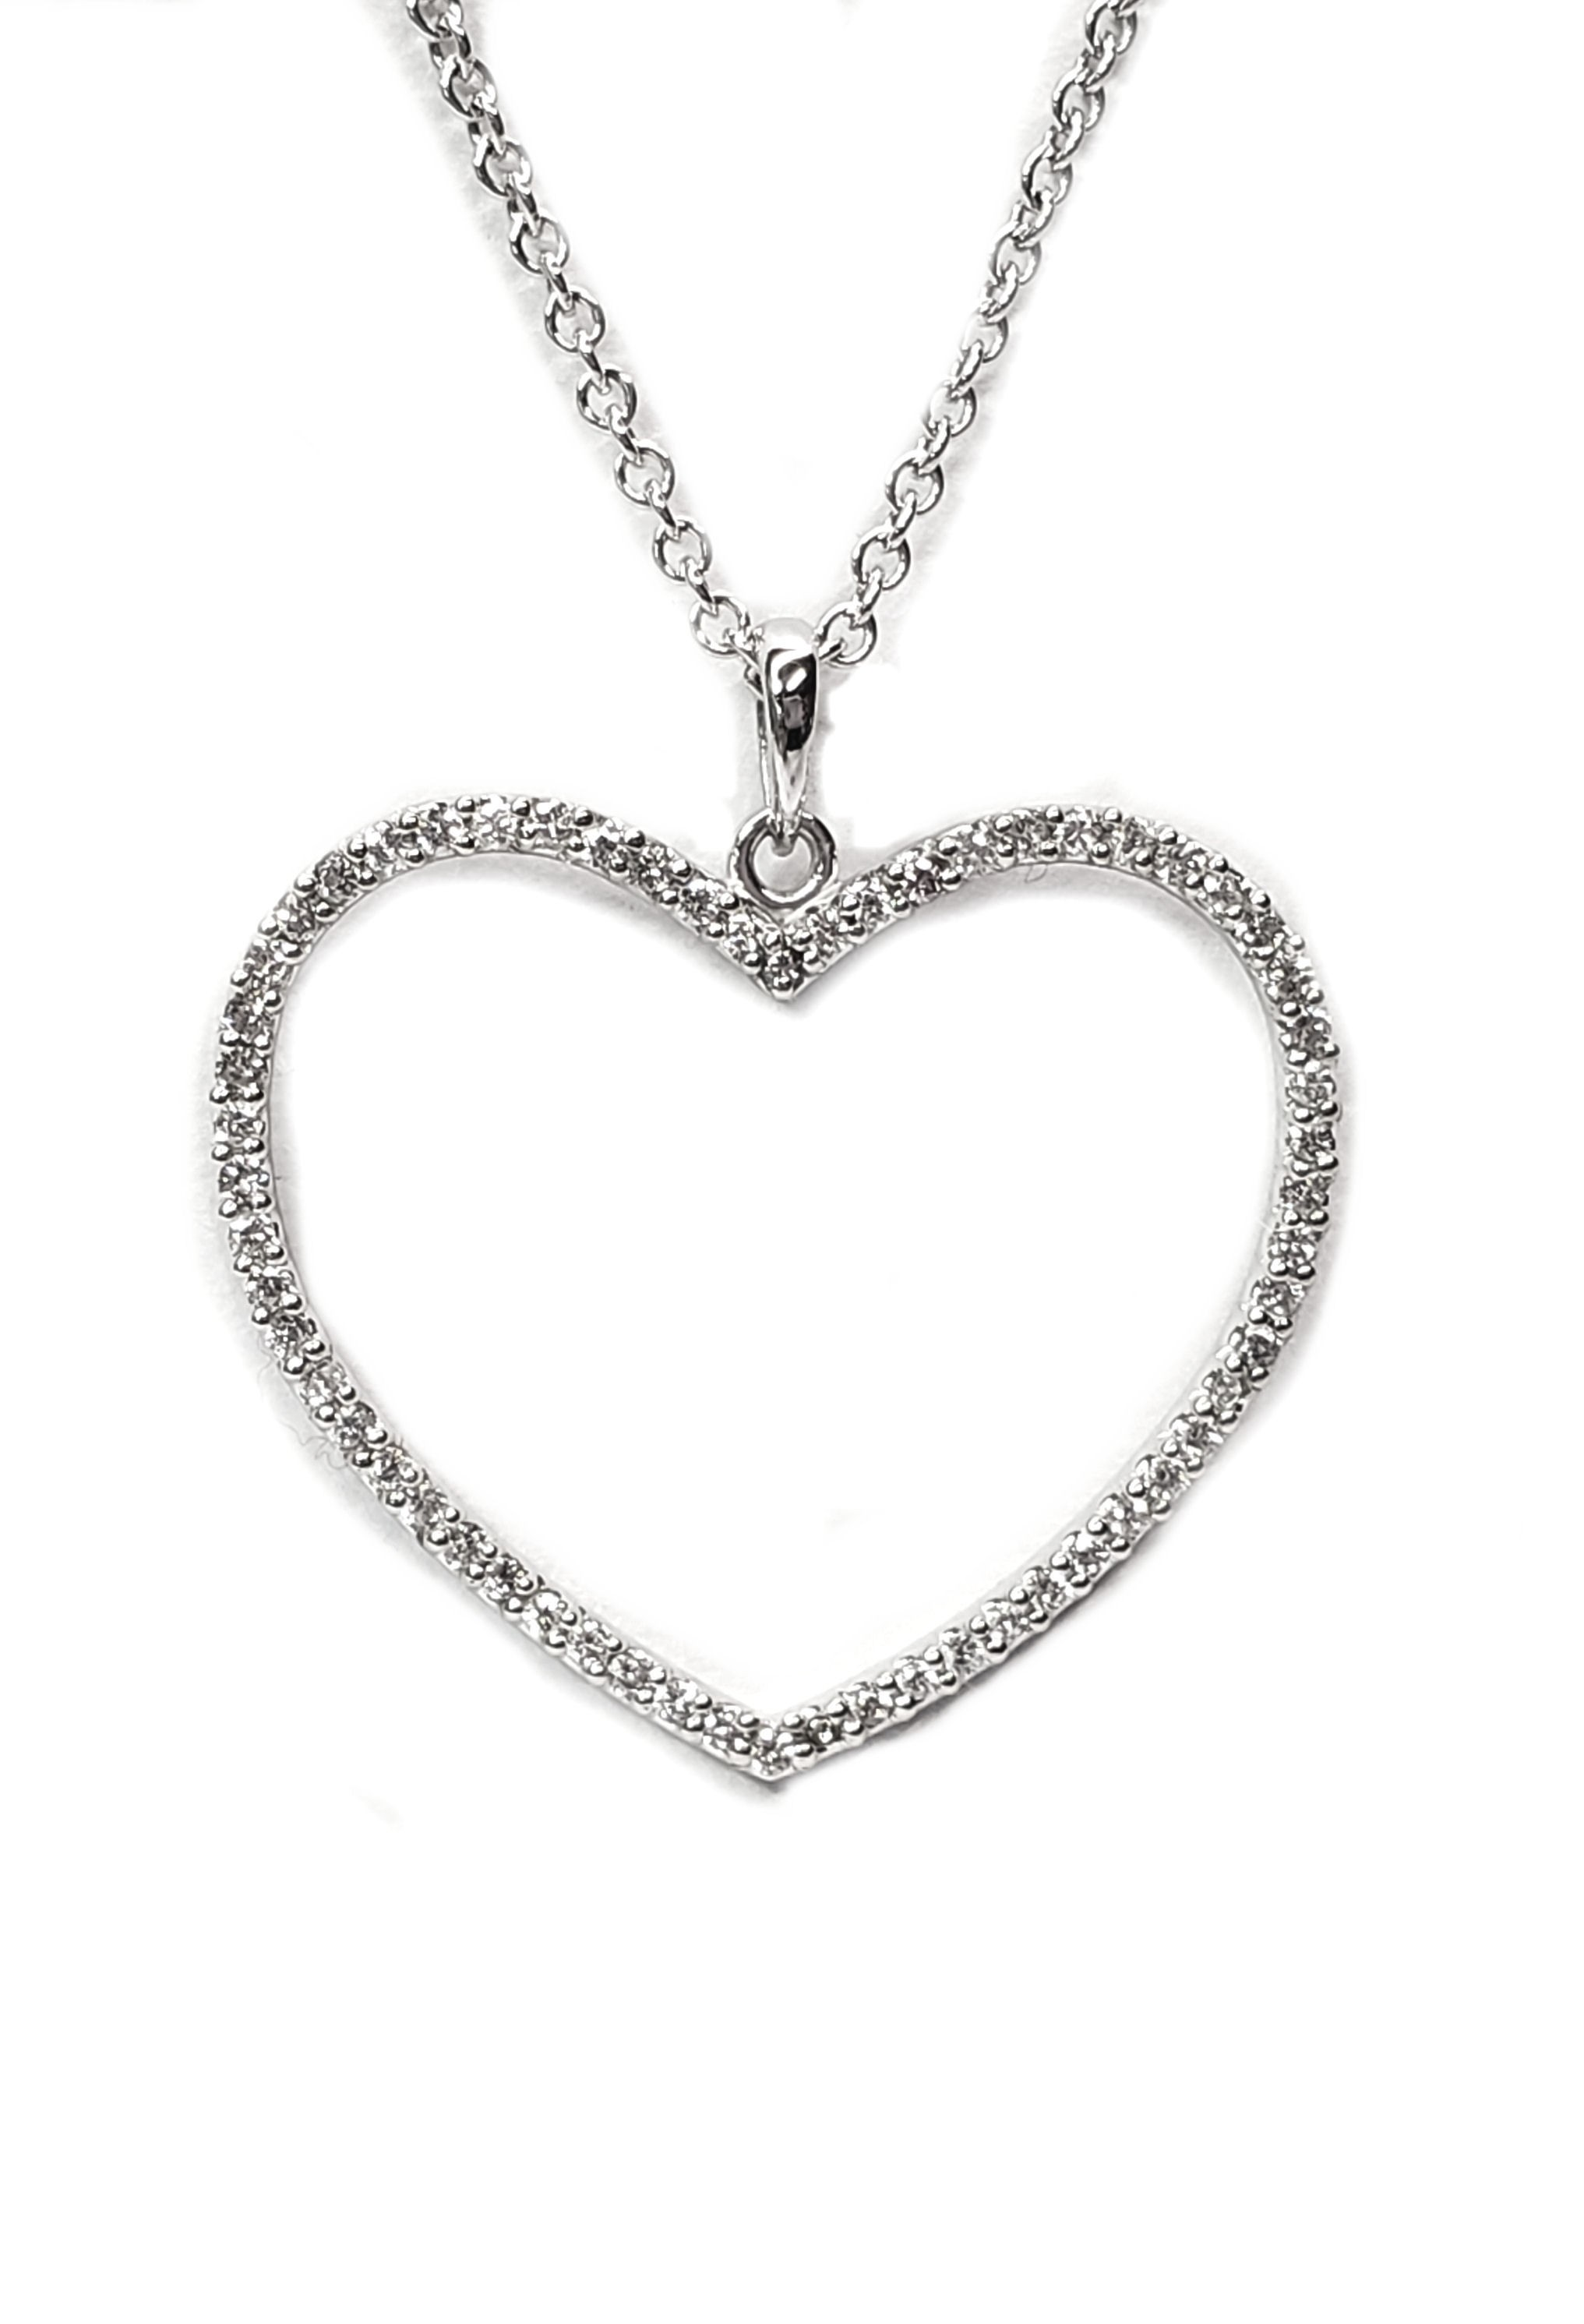 "Diamond Heart Pendant Open Center 1/2ct.t.w. Over 1"" High in 14kt. White Gold"